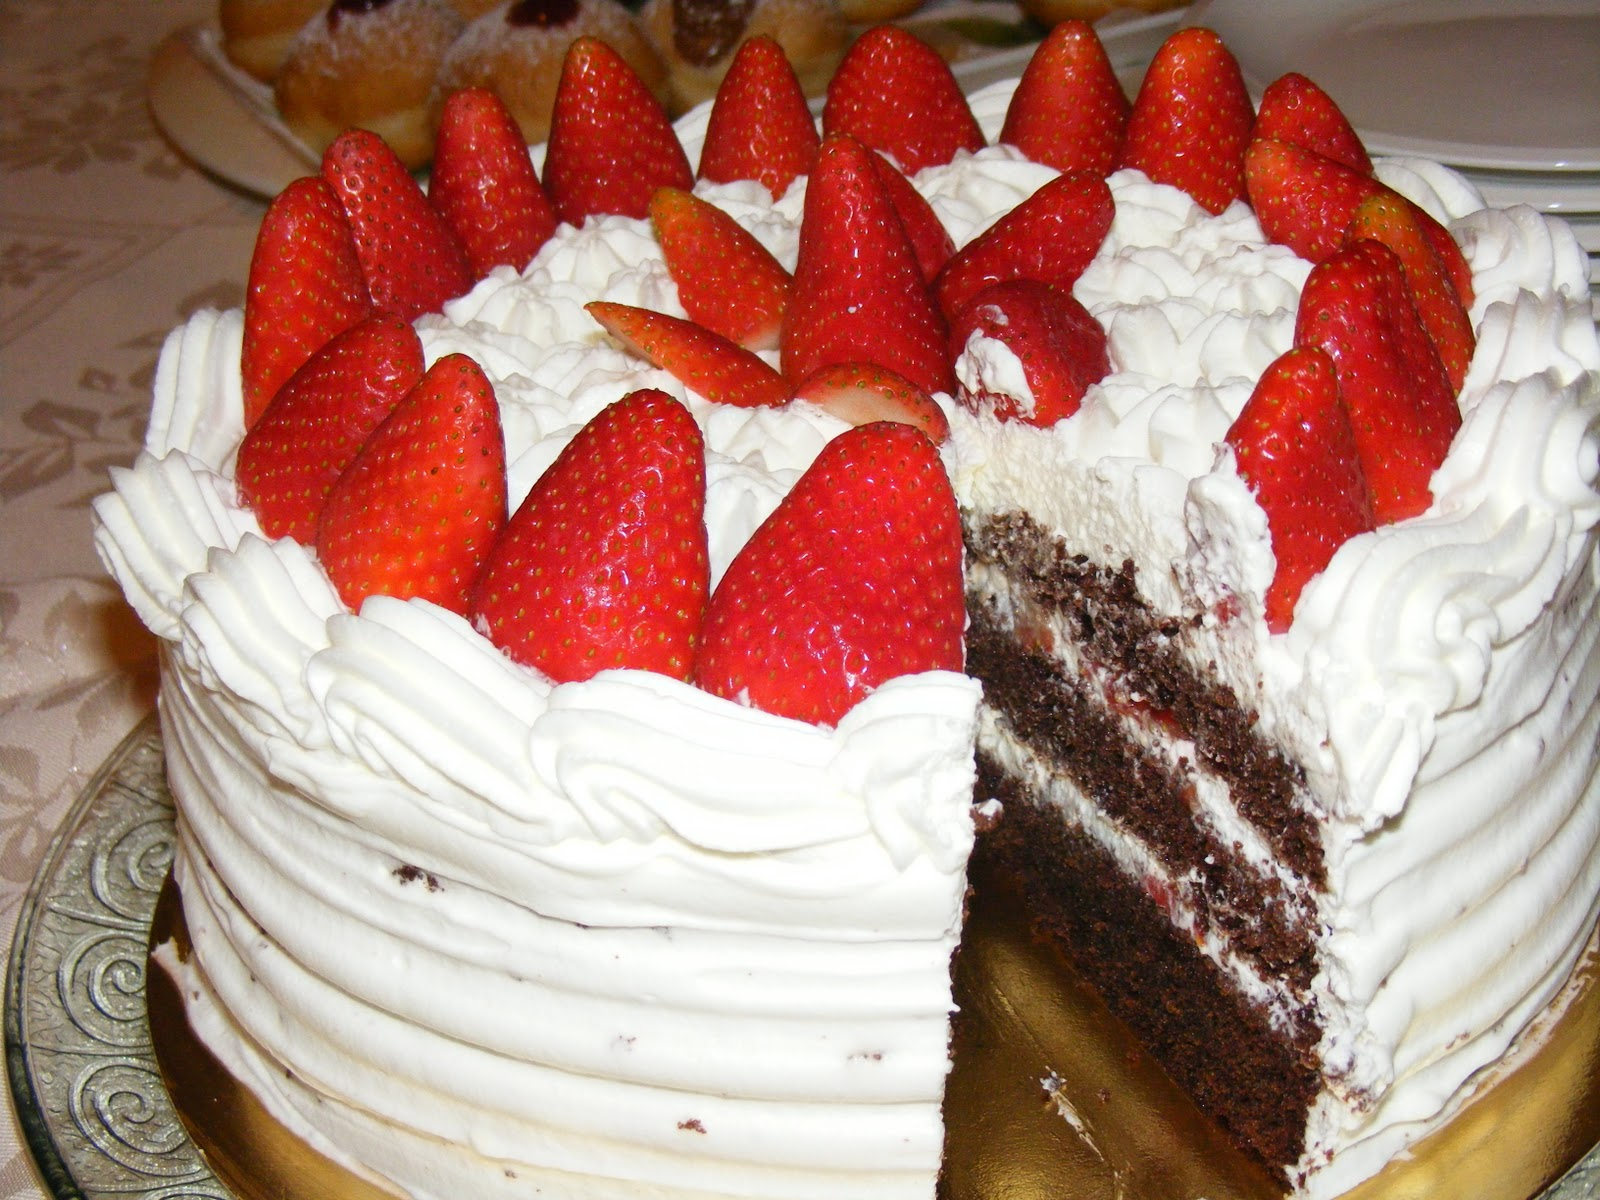 Creme Chantilly Decoration Gateau Layer Cake Fraises Chocolat Et Chantilly Au Mascarpone